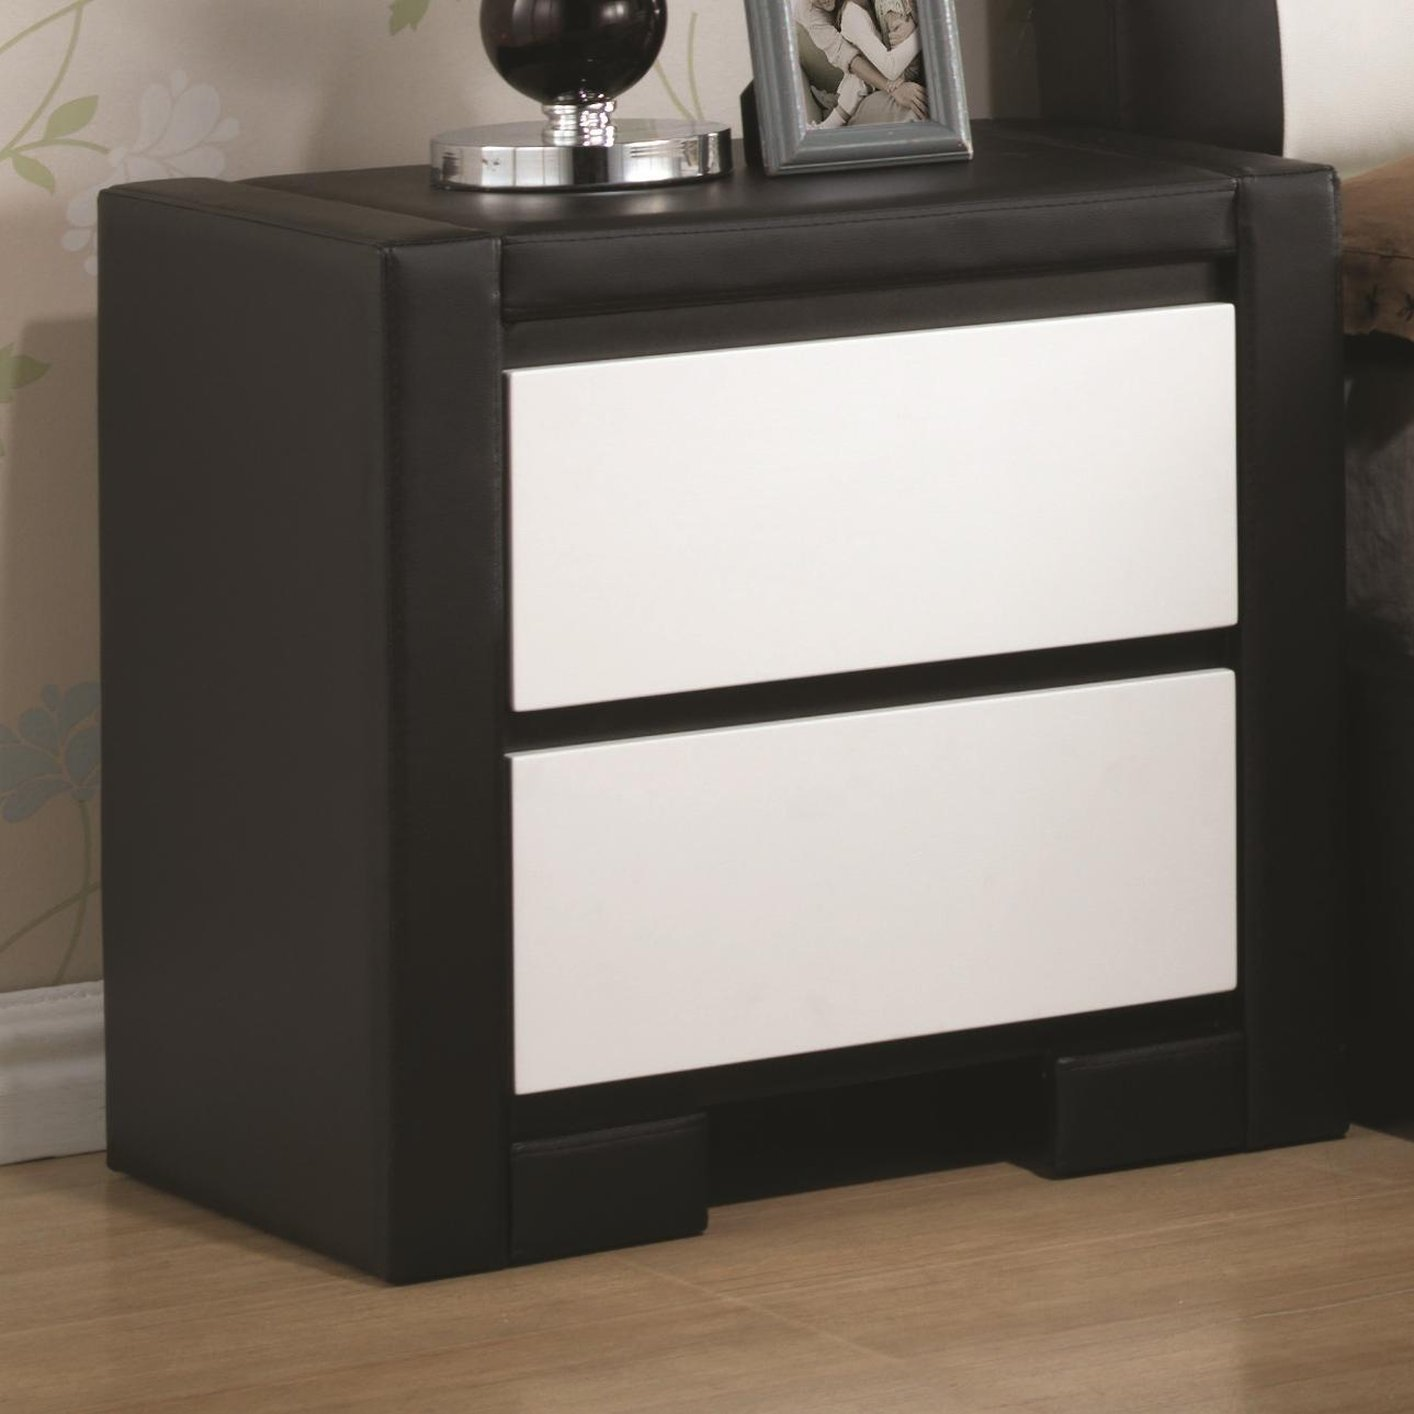 Kimball Bedroom Furniture Coaster 203332 Black Leather Nightstand Steal A Sofa Furniture